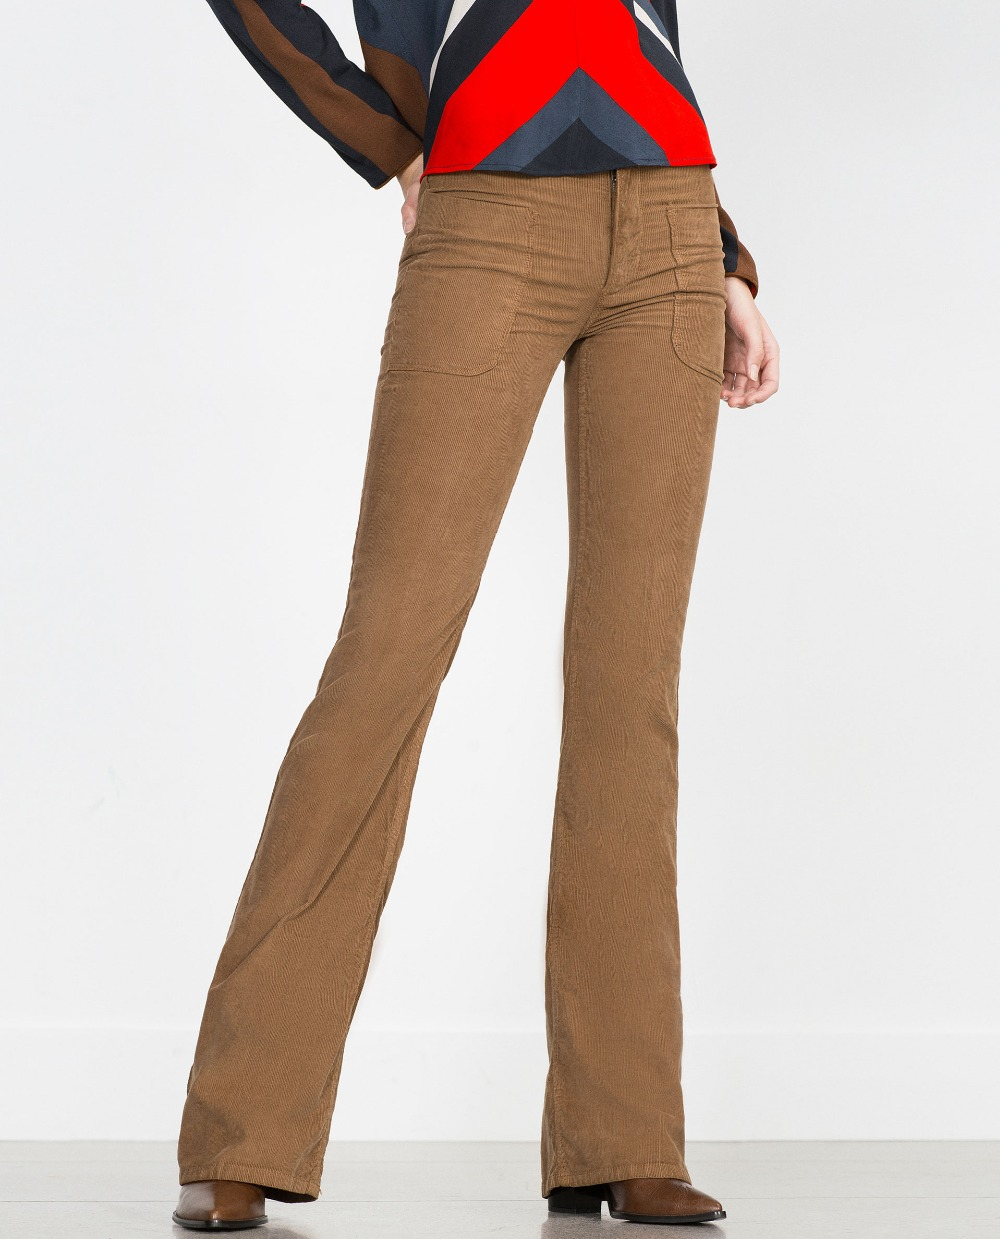 Khaki Long Pants Promotion-Shop for Promotional Khaki Long Pants ...